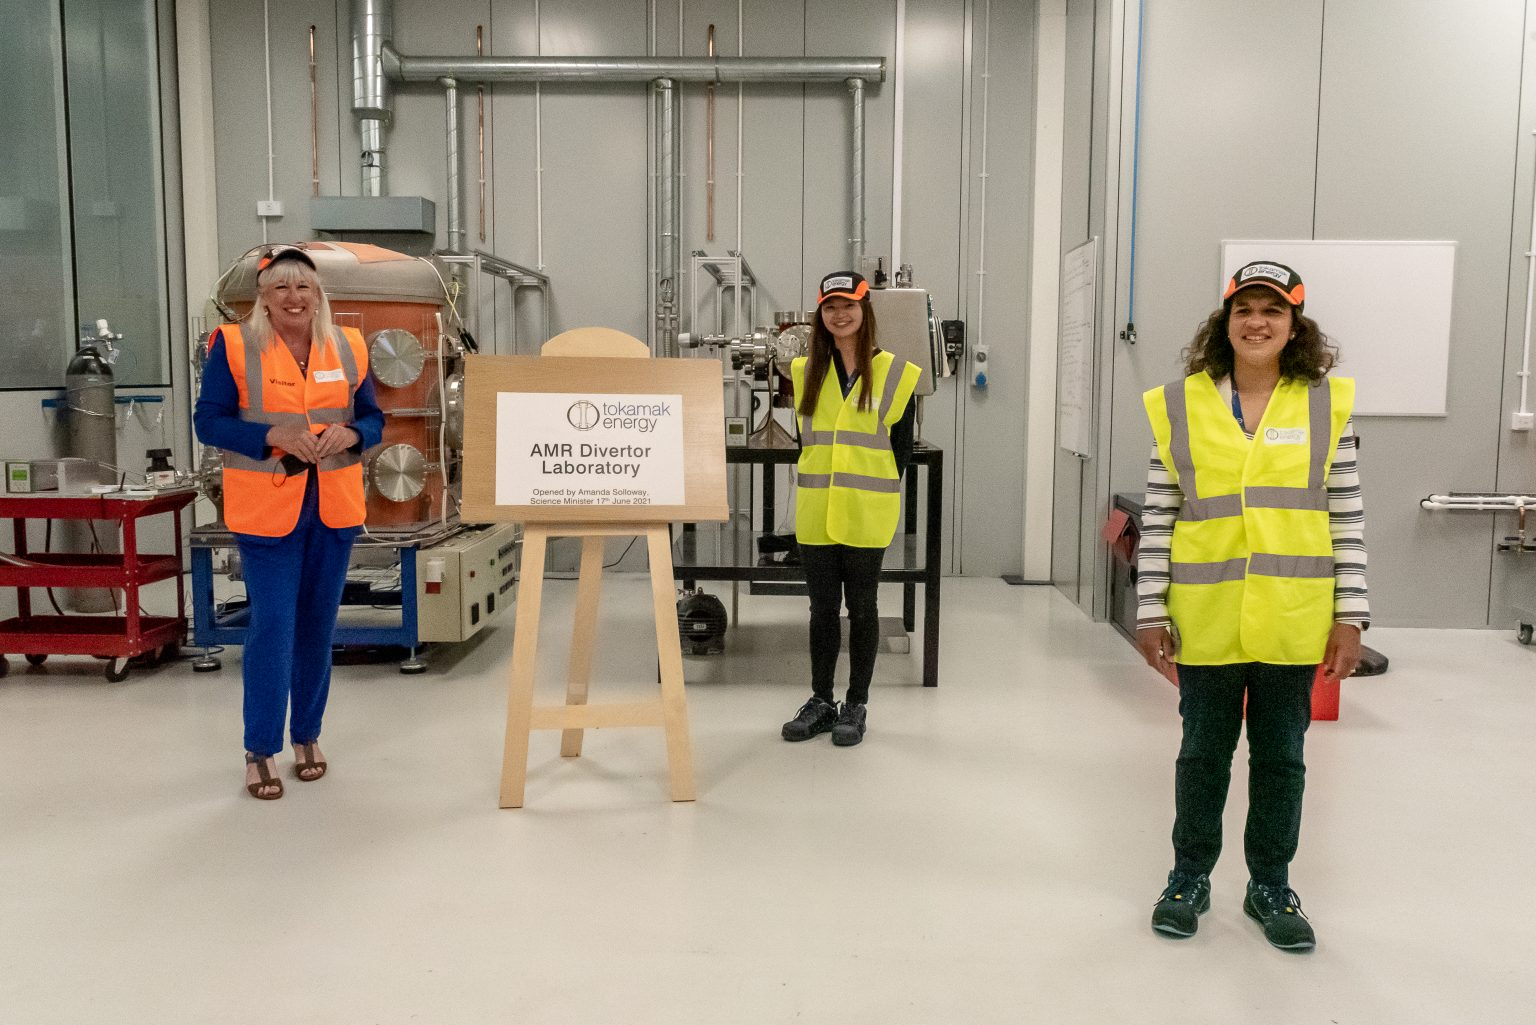 Minister for Science, Amanda Solloway MP, with Tokamak Energy's Dr Vivian Lee (Development Engineer) and Marion Hudson (AMR Programme Manager)